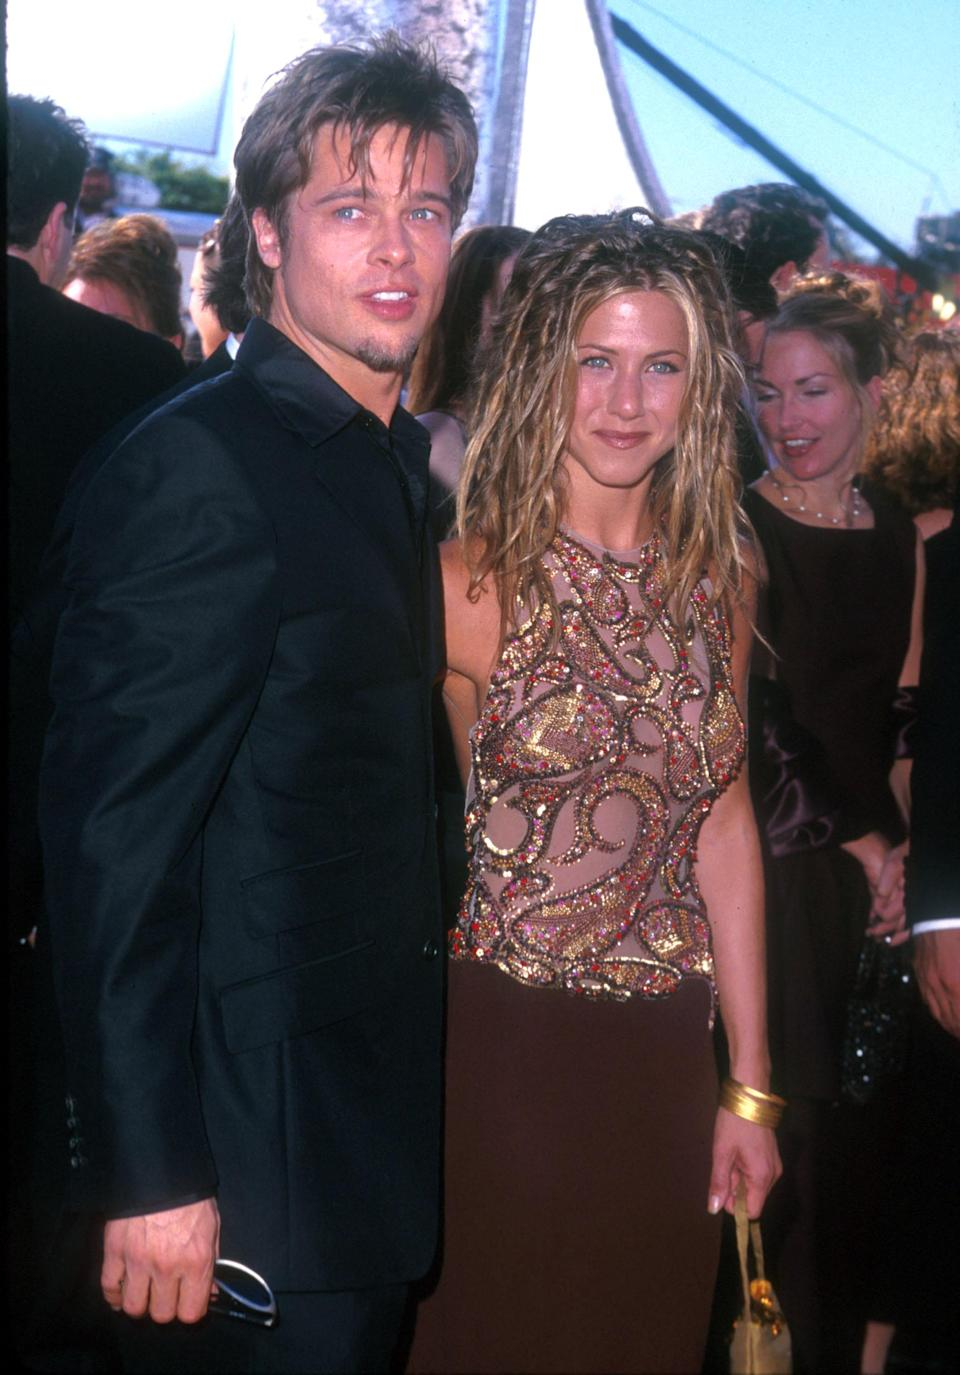 <p>Brad Pitt and Jennifer Aniston were married for for five years, from 2000 until 2005. The lovebirds appeared on numerous red carpets together and seemed to almost match each other's looks. Here's Brad channeling Jennifer's boho hairstyle with his own choppy 'do. Photo: Getty Images </p>